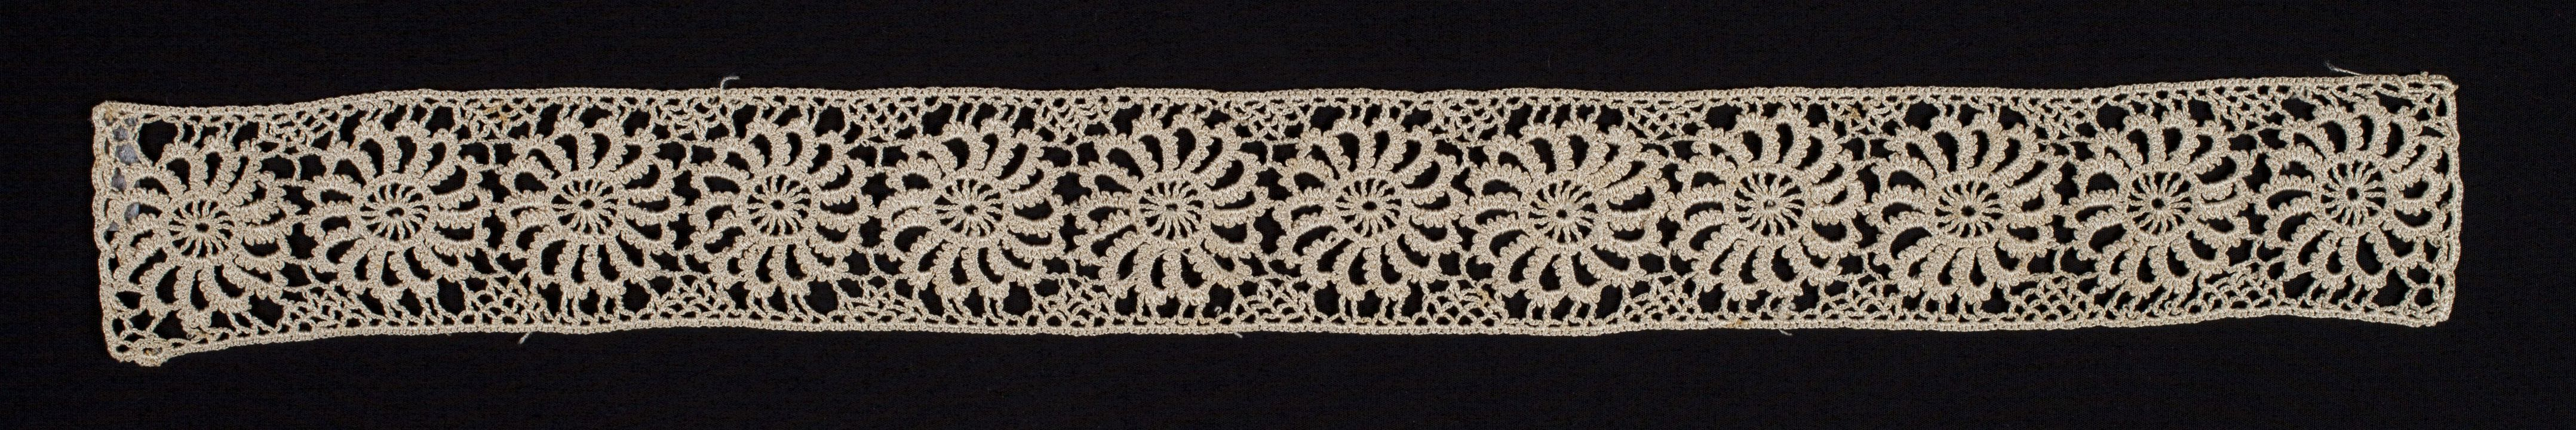 88/959 Insertion, crochet lace, silk, made by Mrs Edwin Field, Australia, 1900-1910. Click to enlarge.